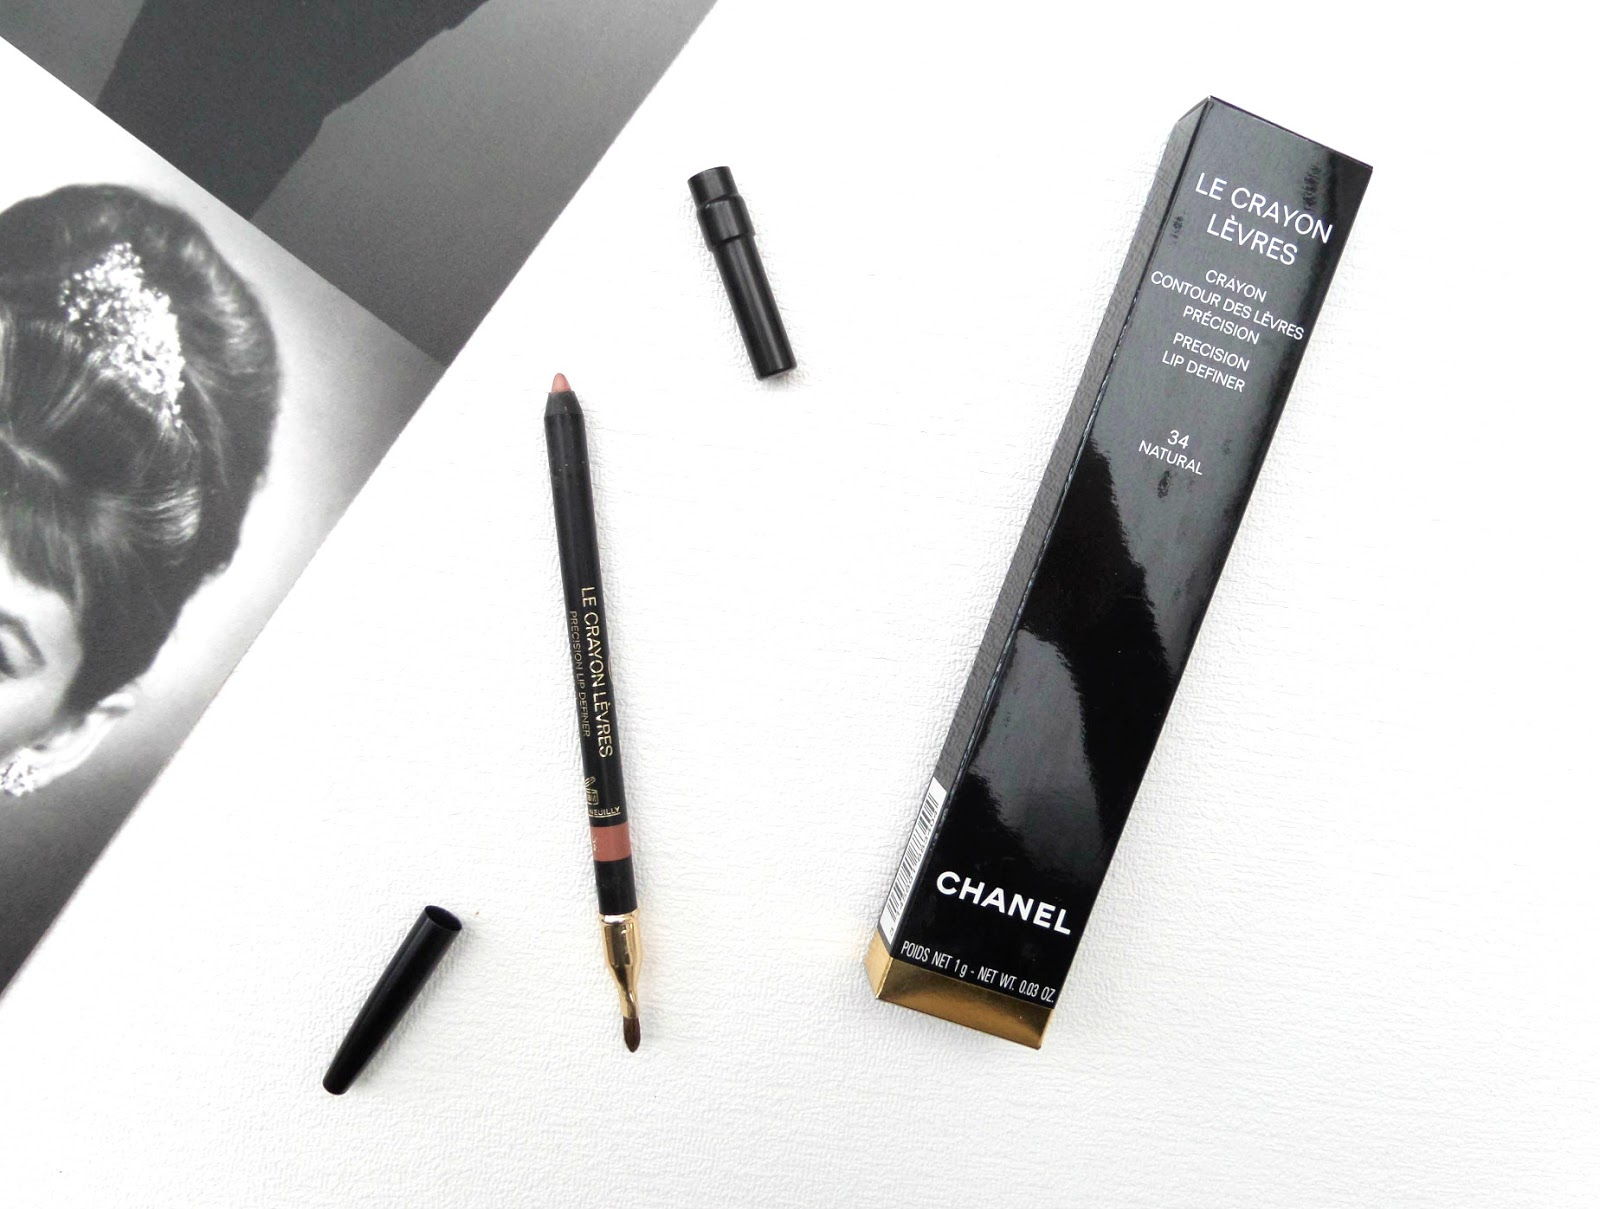 The Chanel Le Crayon Levres, the Precision Lip Definer in 34